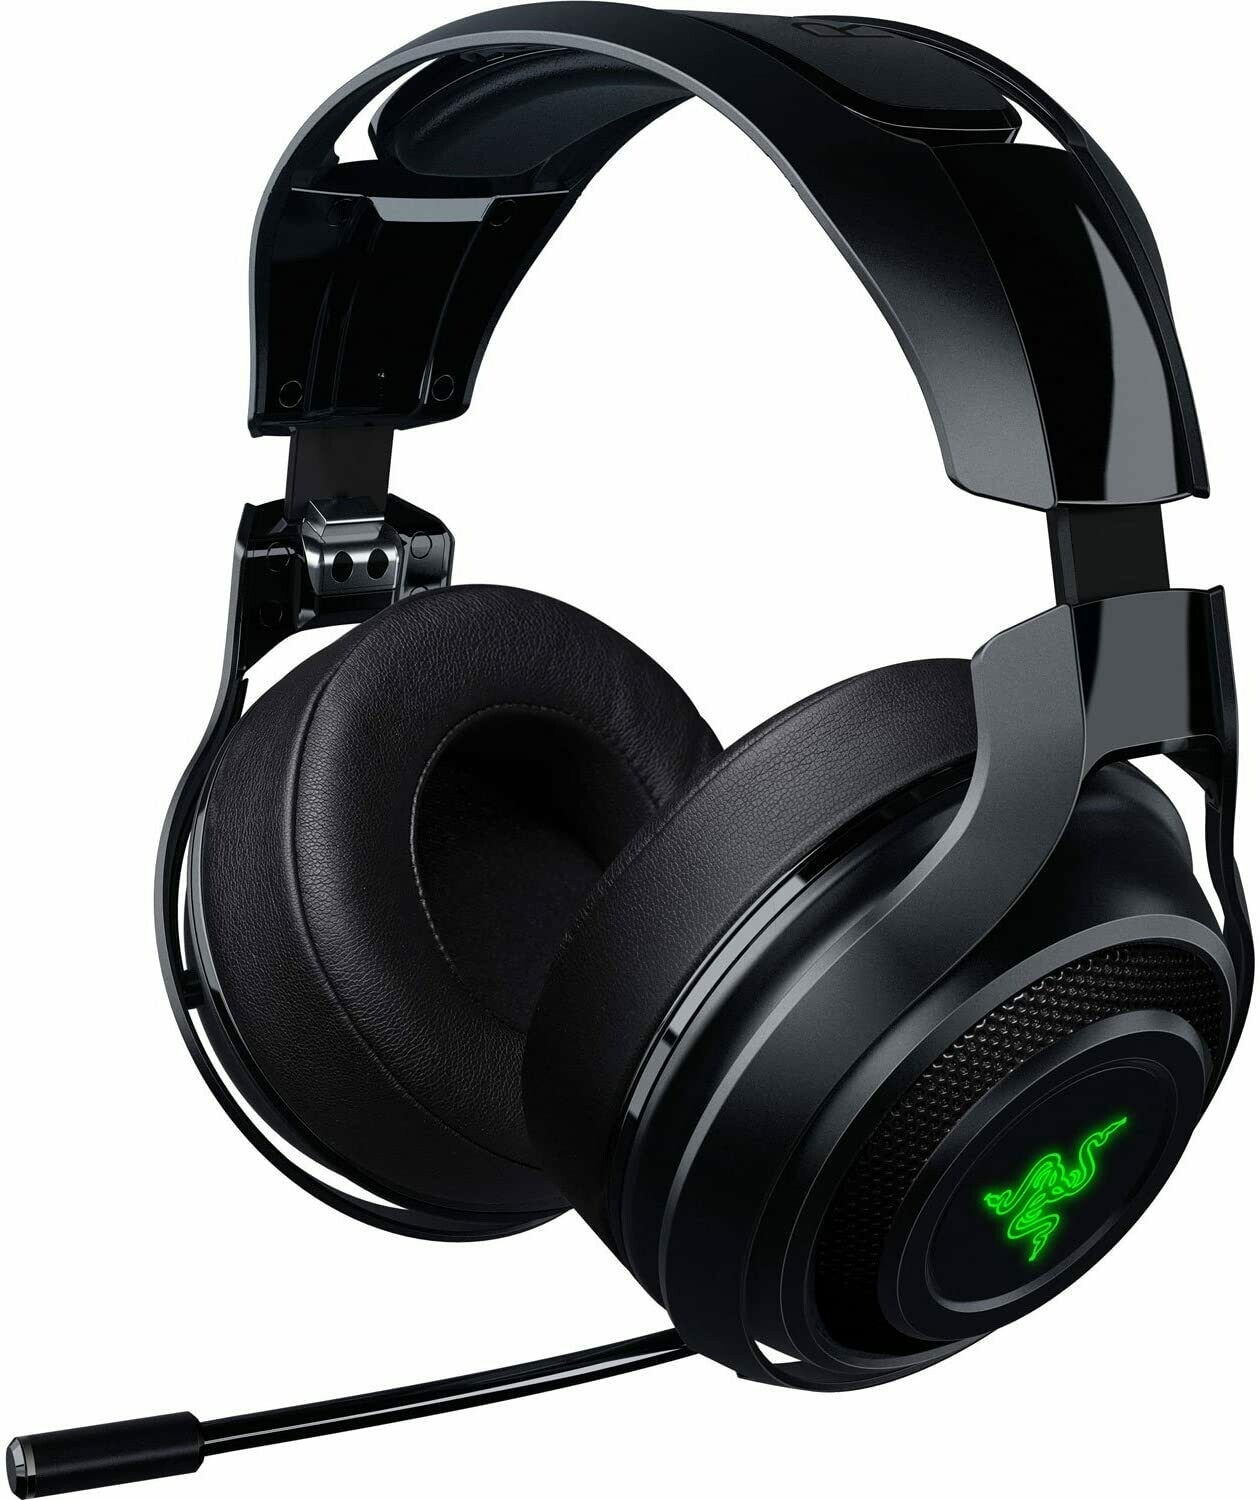 Razer ManO'War: Wired 7.1 Surround Sound Quick Action Controls - Unidirectional Retractable Mic - Gaming Headset Works with PC, PS4, & Xbox One